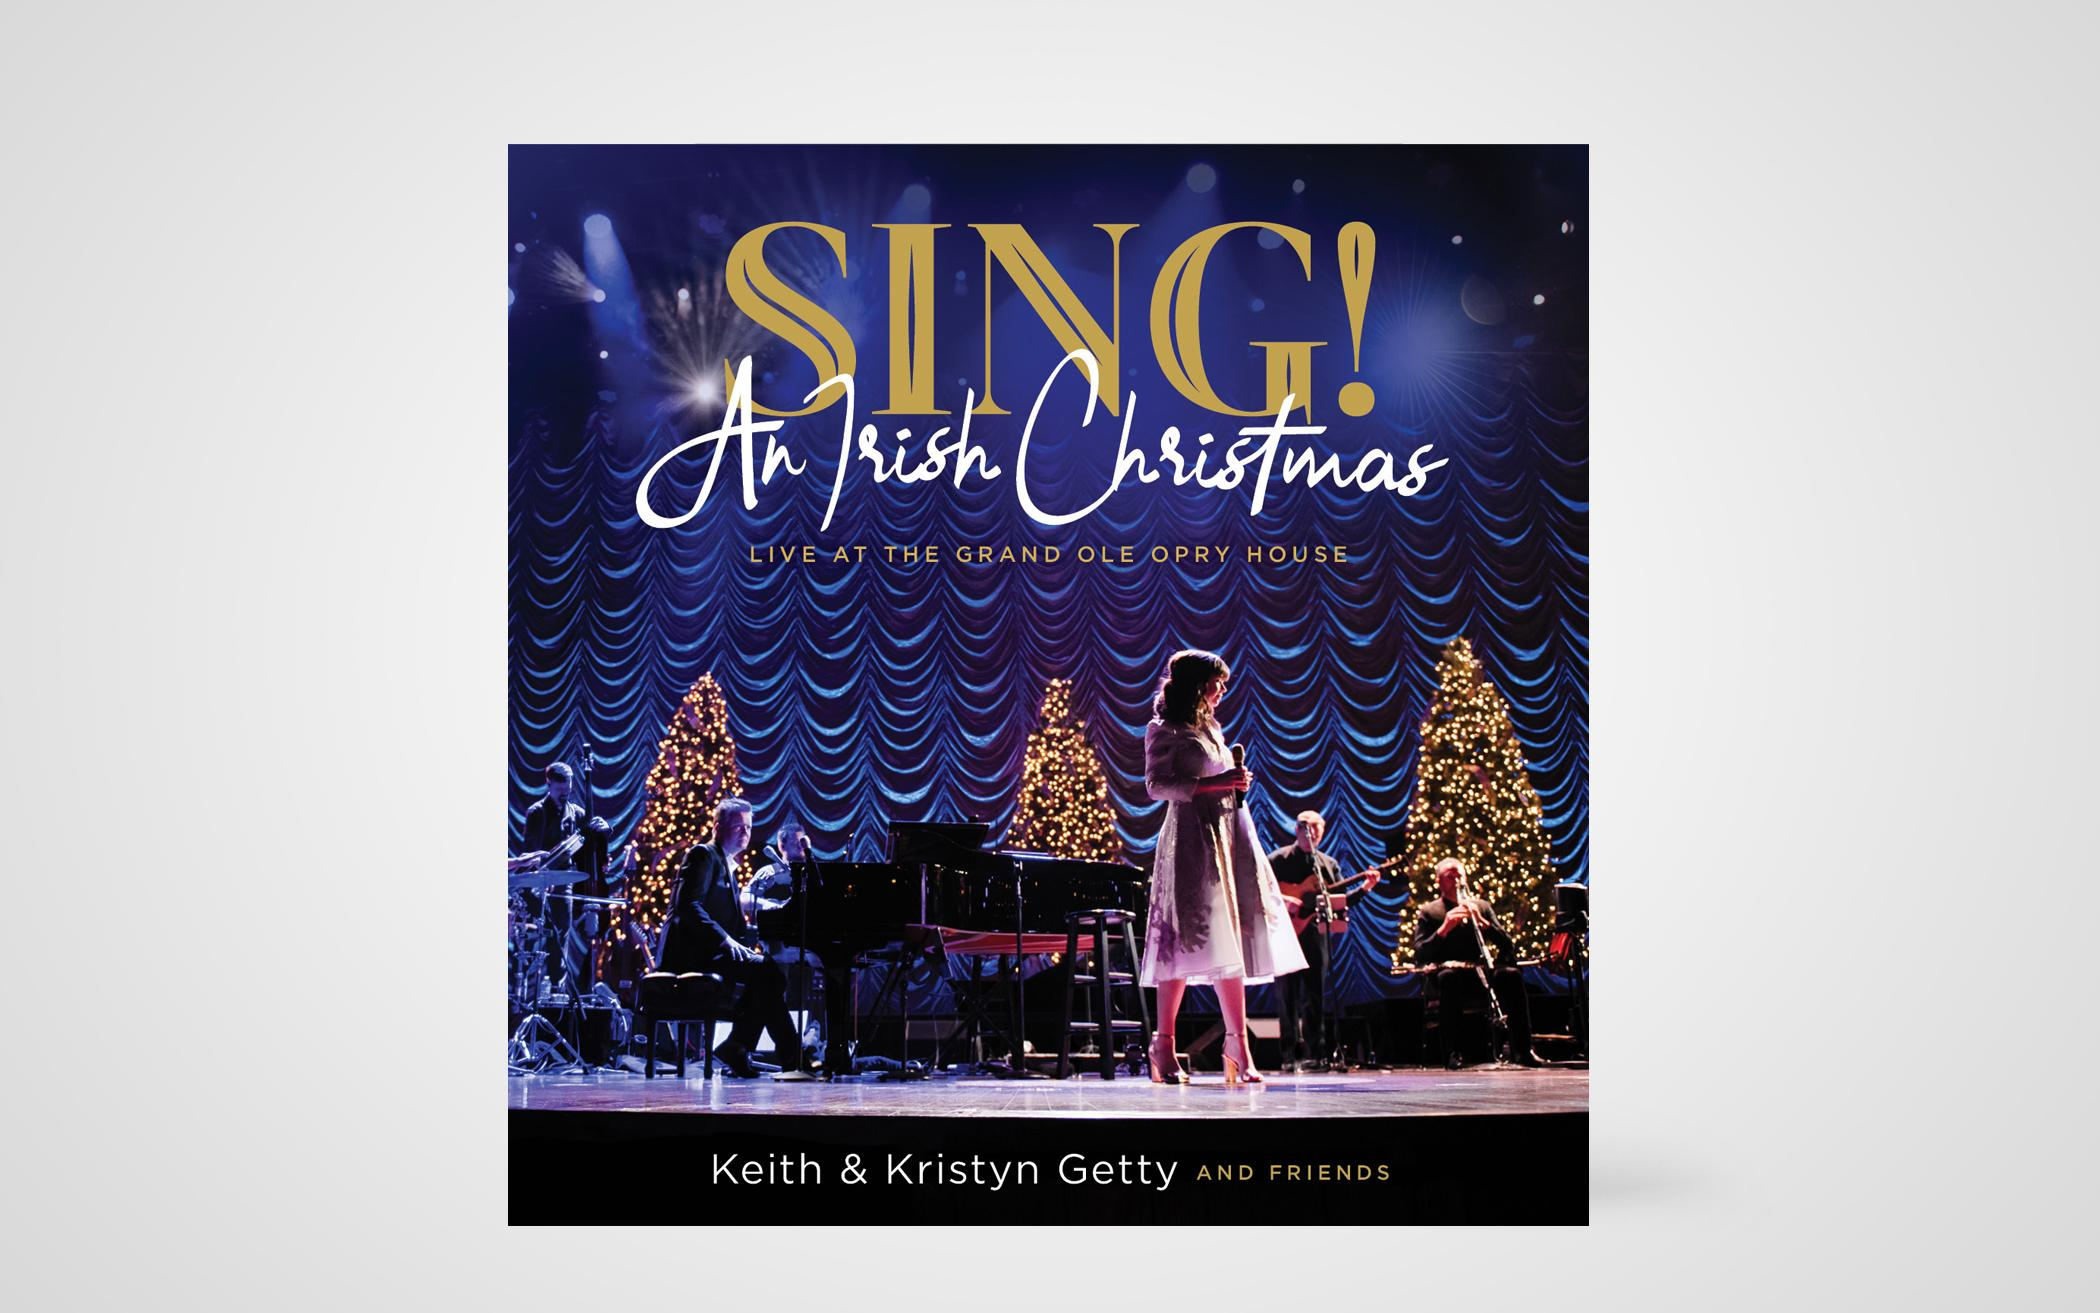 Sing! An Irish Christmas – Live at the Grand Ole Opry House